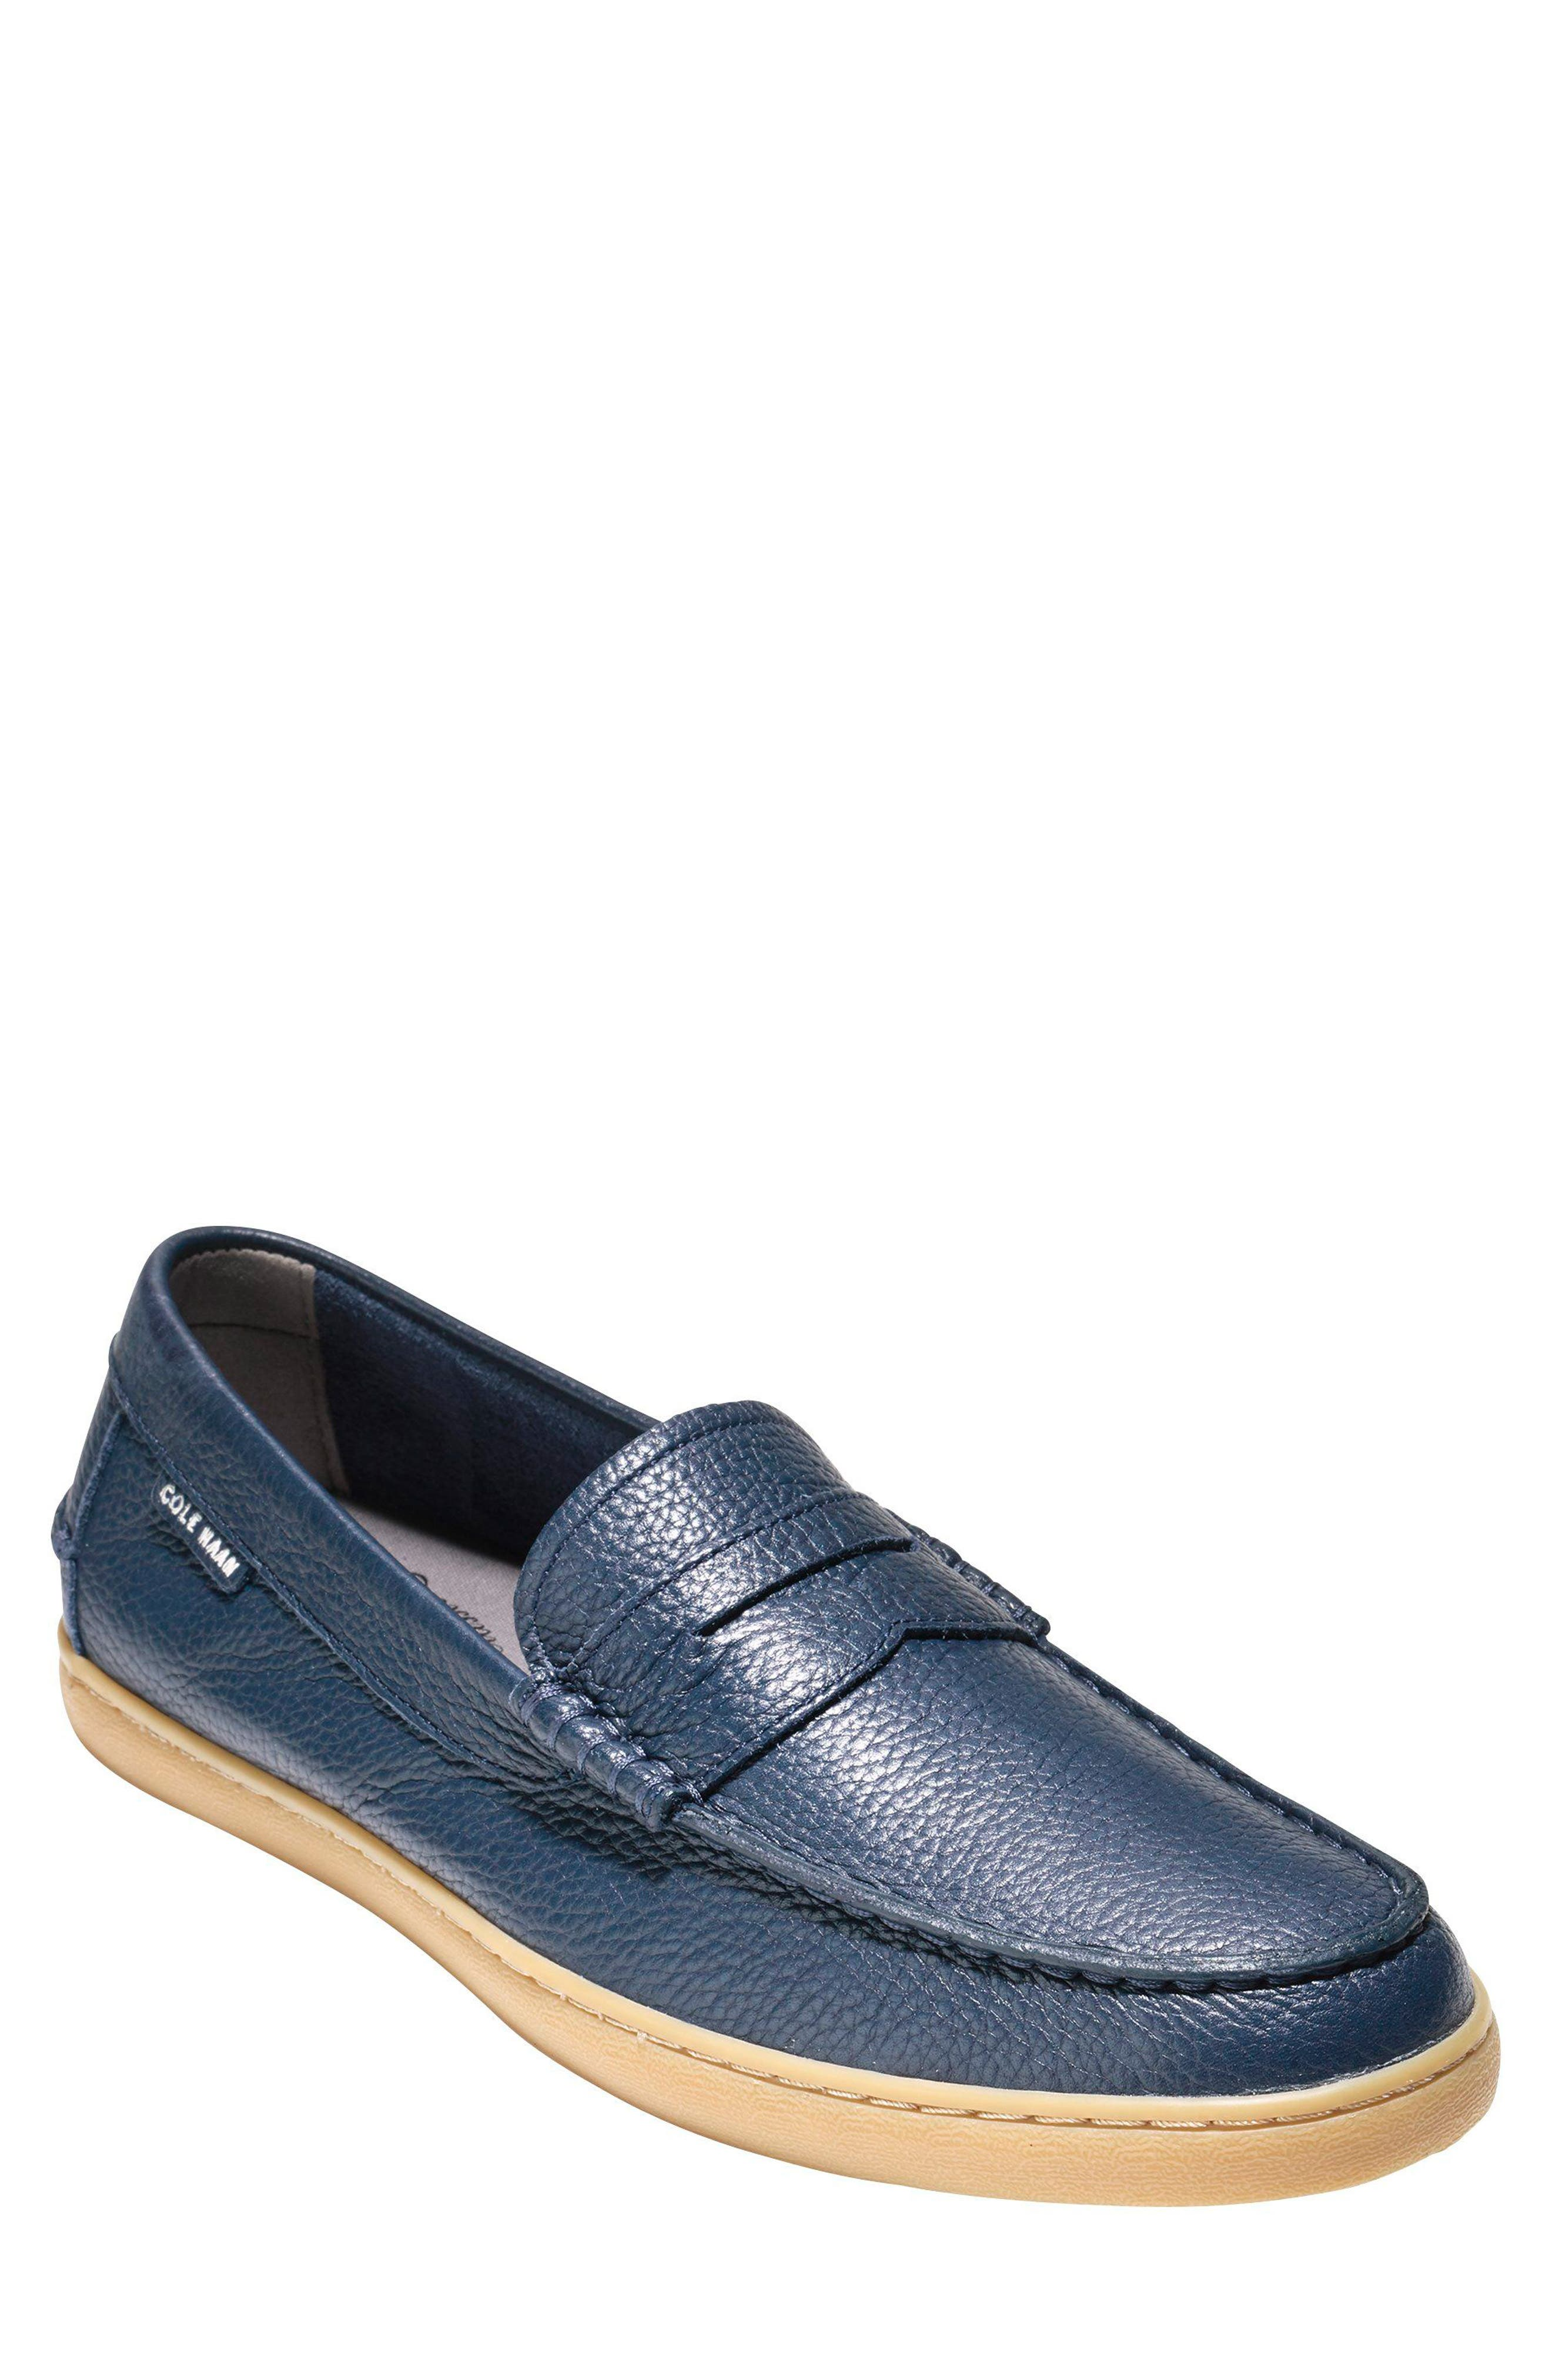 Alternate Image 1 Selected - Cole Haan 'Pinch Weekend' Penny Loafer (Men)